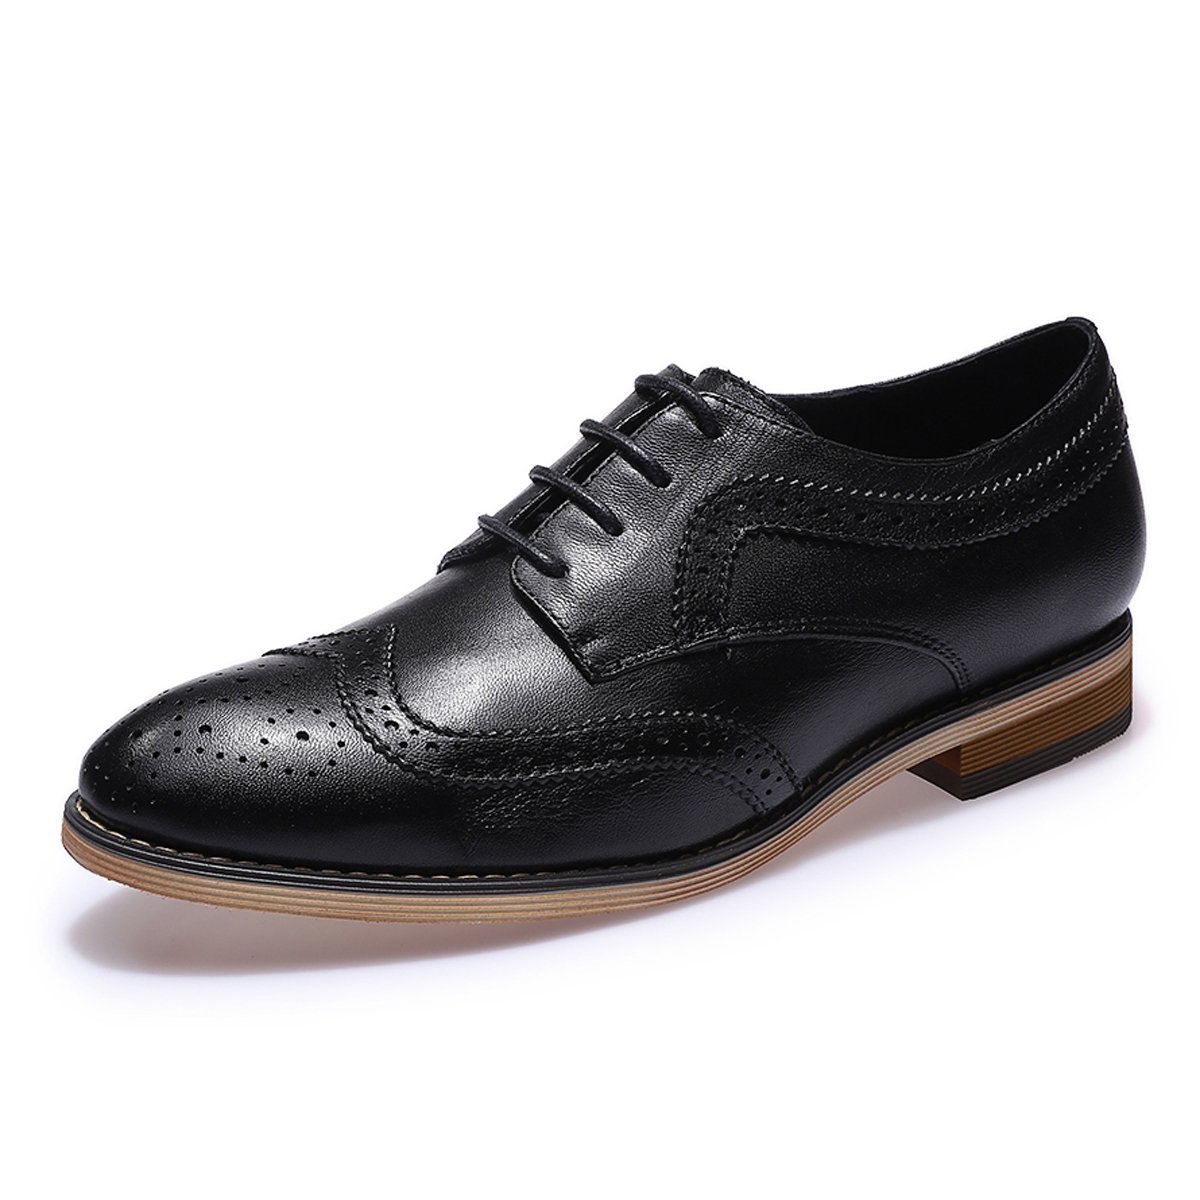 1920s Style Shoes Mona flying Womens Leather Perforated Lace-up Oxfords Brogue Wingtip Derby Saddle Shoes for Girls ladis Womens $89.99 AT vintagedancer.com